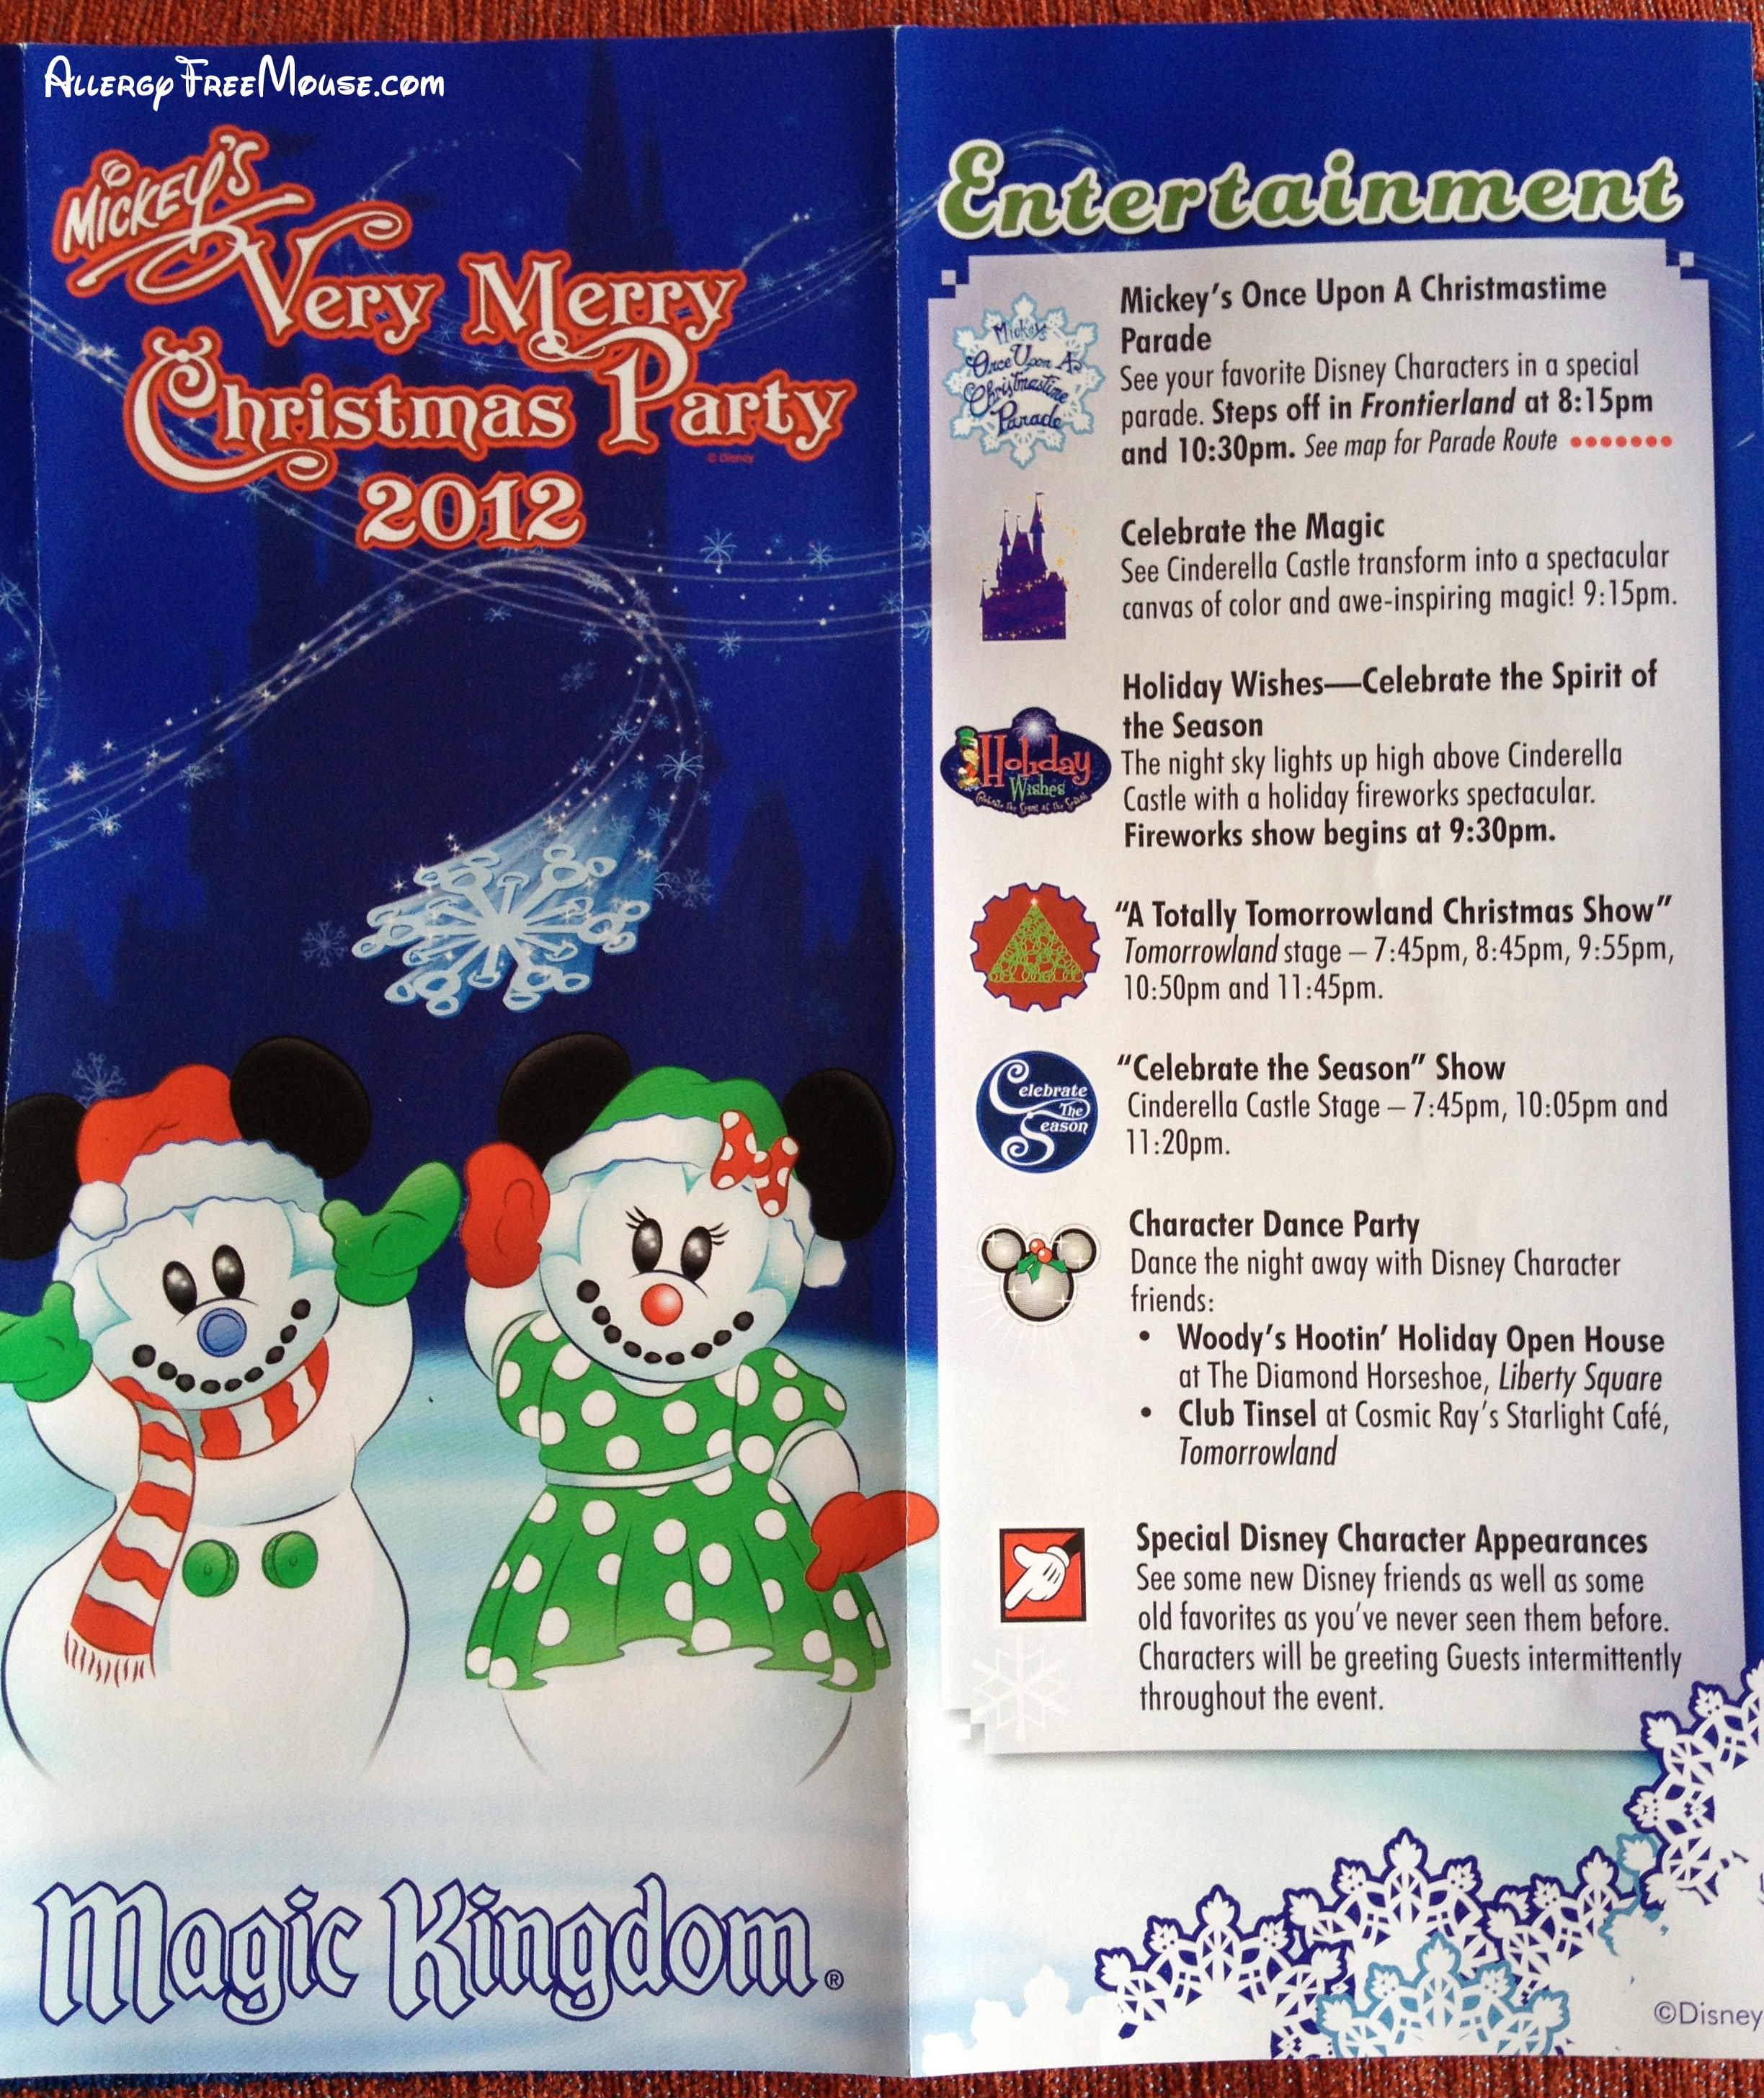 Disney World's Mickey's Very Merry Christmas Party map